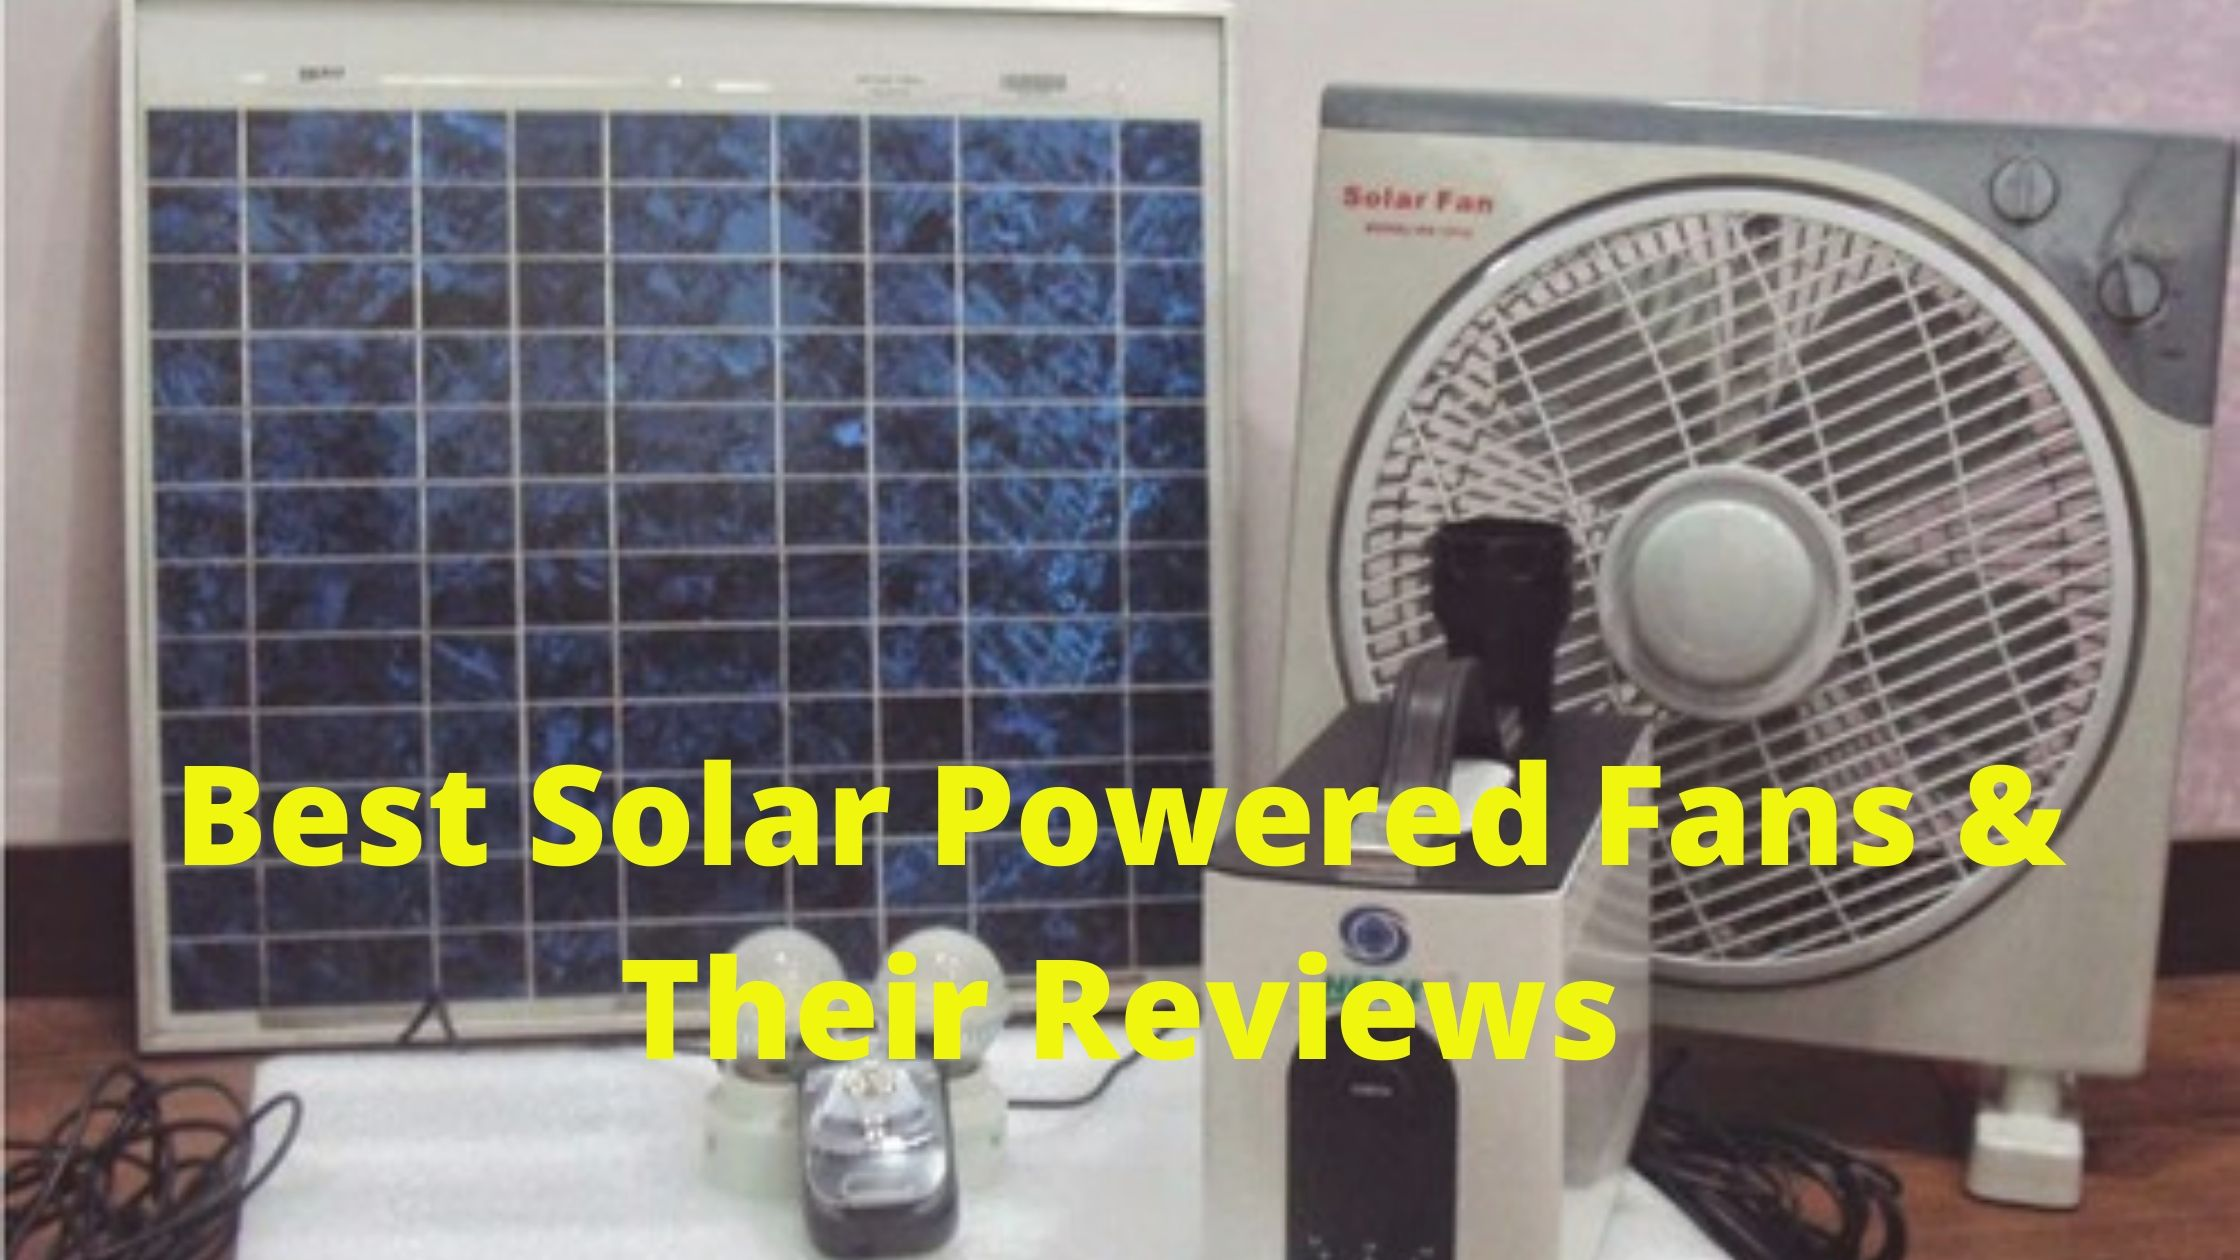 Best Solar Powered Fans